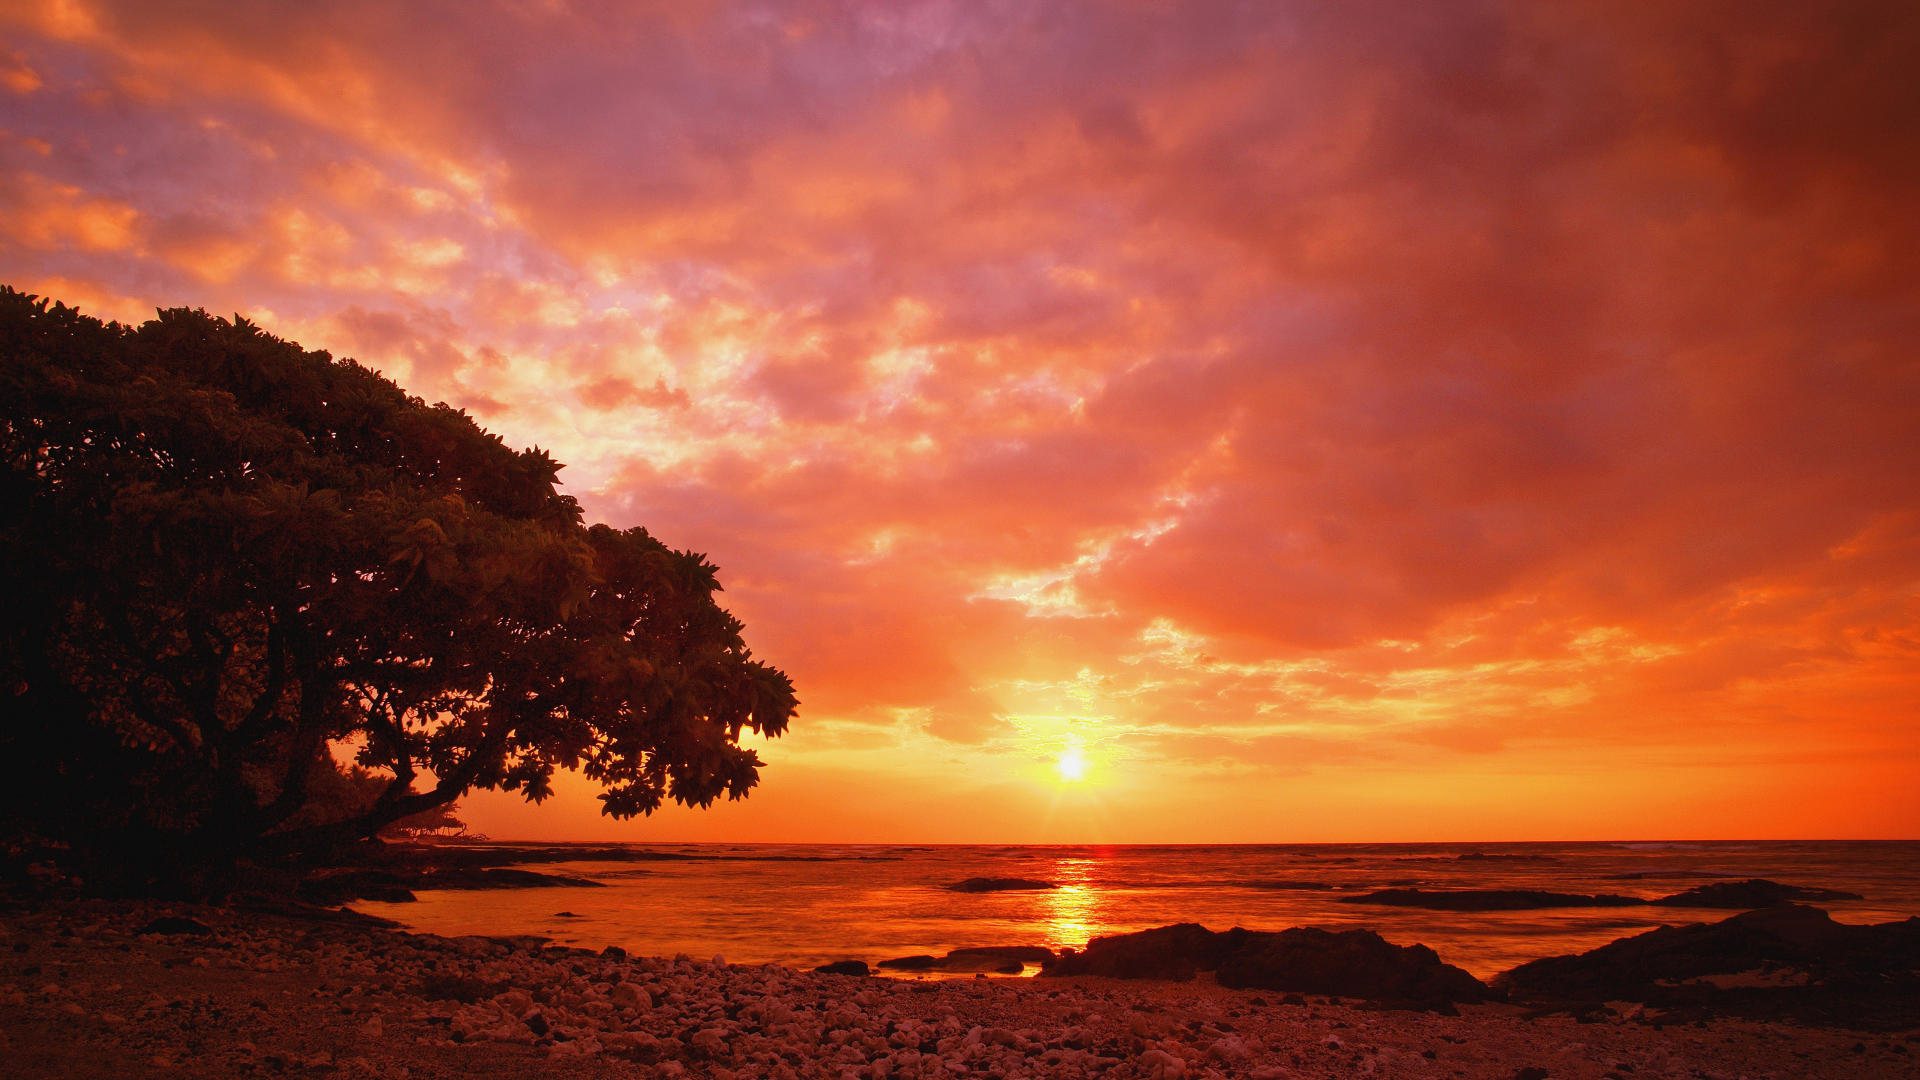 Sunset Wallpapers HD A13